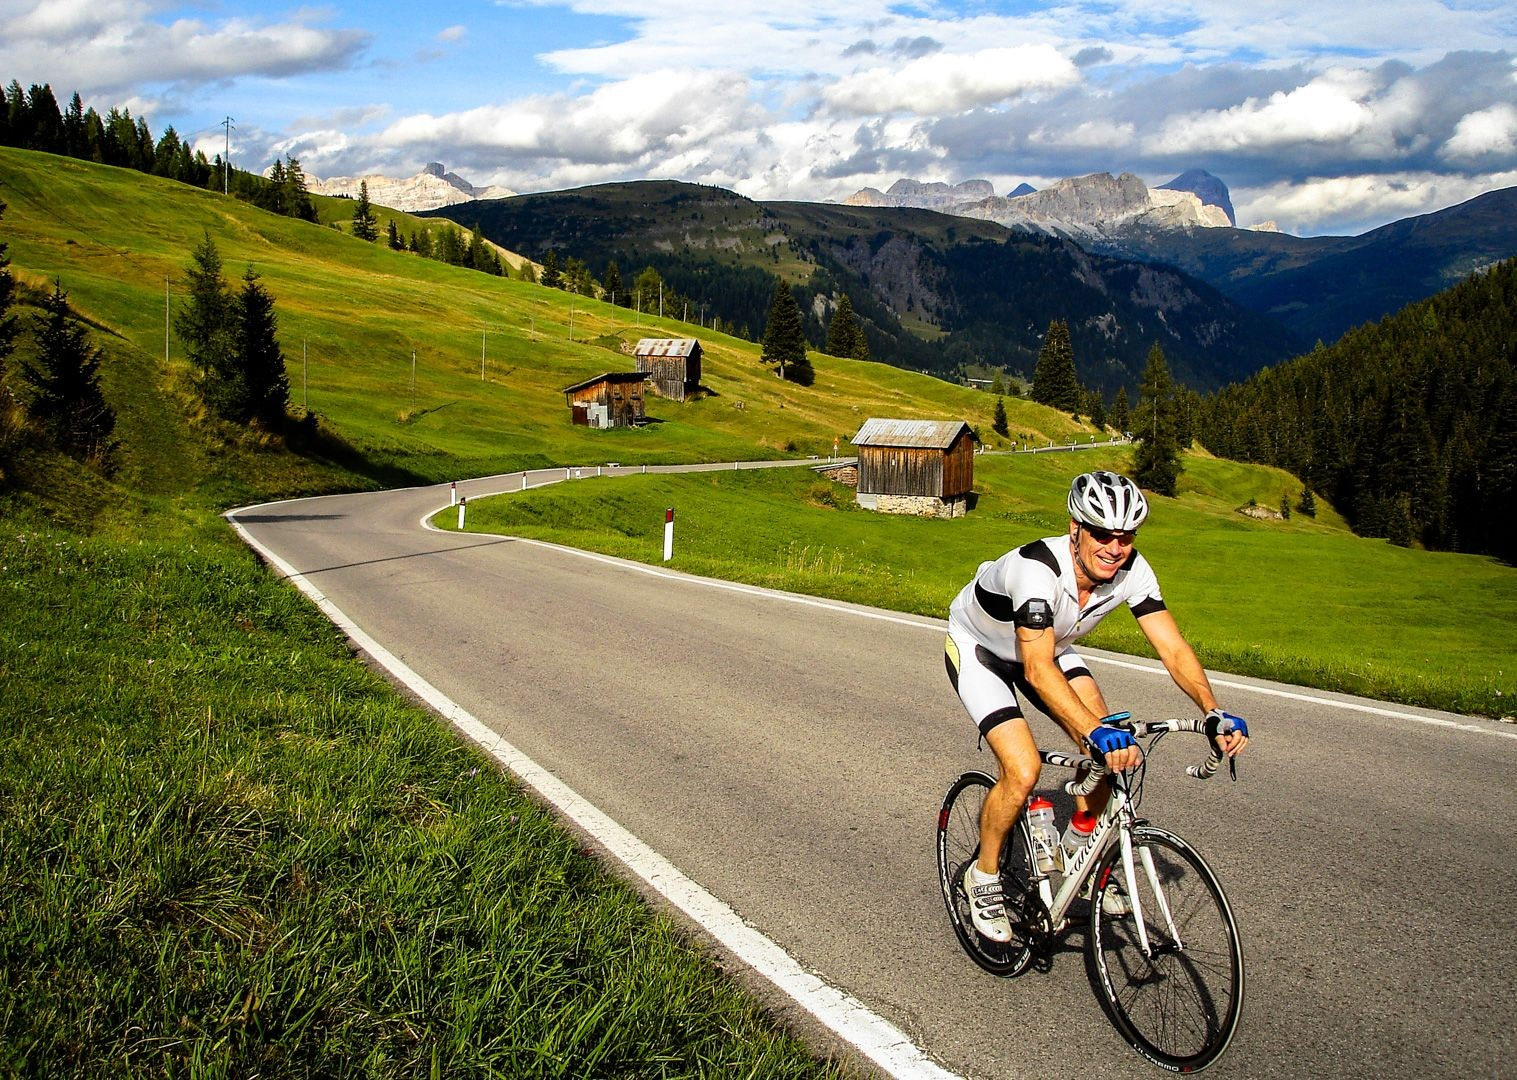 incredible-road-cycling-with-saddle-skedaddle-in-italy.jpg - Italy - Dolomiti Discoverer - Guided Road Cycling Holiday - Road Cycling